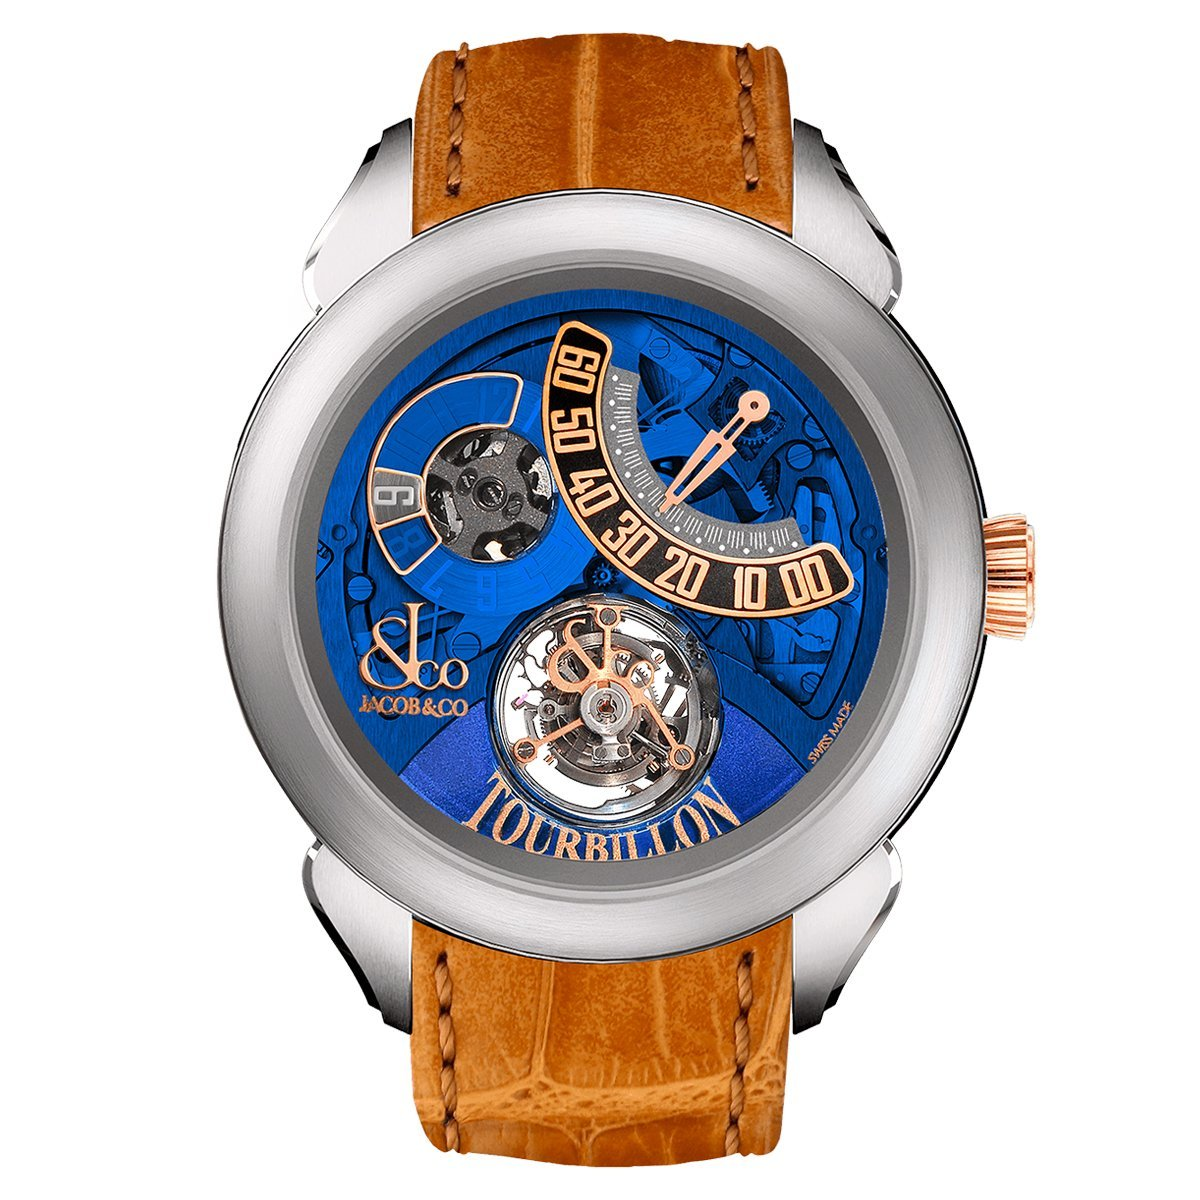 Jacob & Co. Palatial Flying Tourbillon Jumping Hour Titanium Blue Mineral - Watches & Crystals